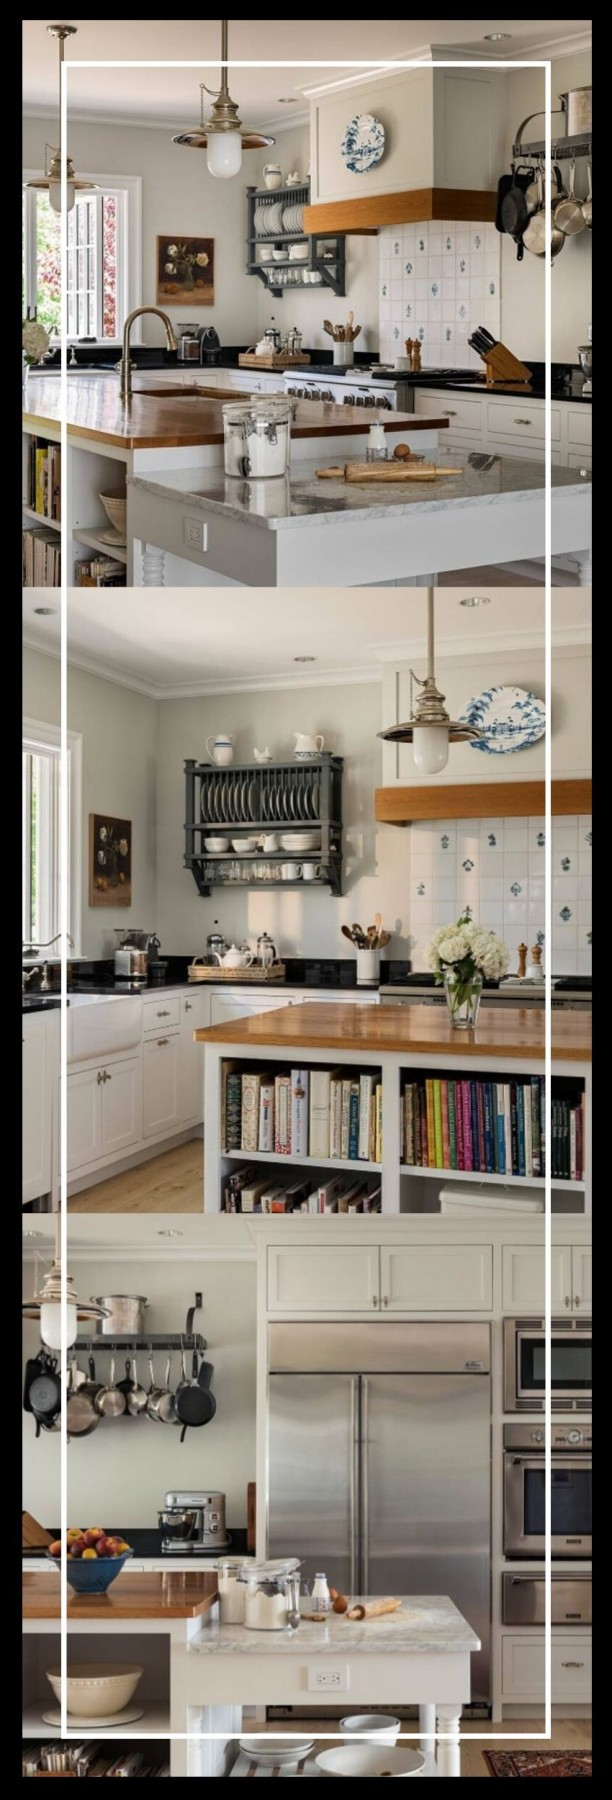 kitchen island ideas with boiok case on end